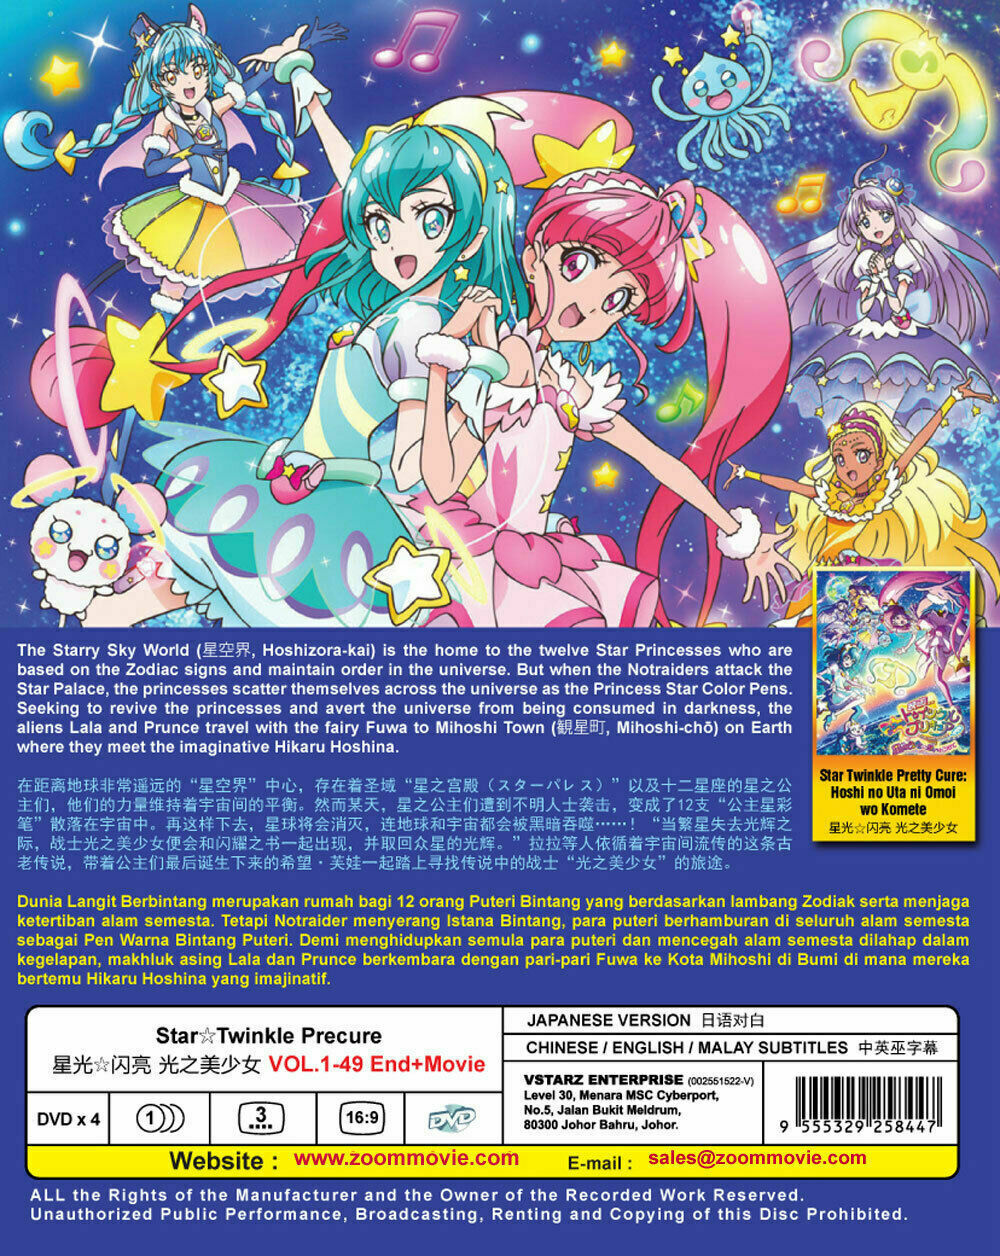 Star☆Twinkle Precure Eps. 1 - 49 End + Movie with English Subtitle Ship From USA